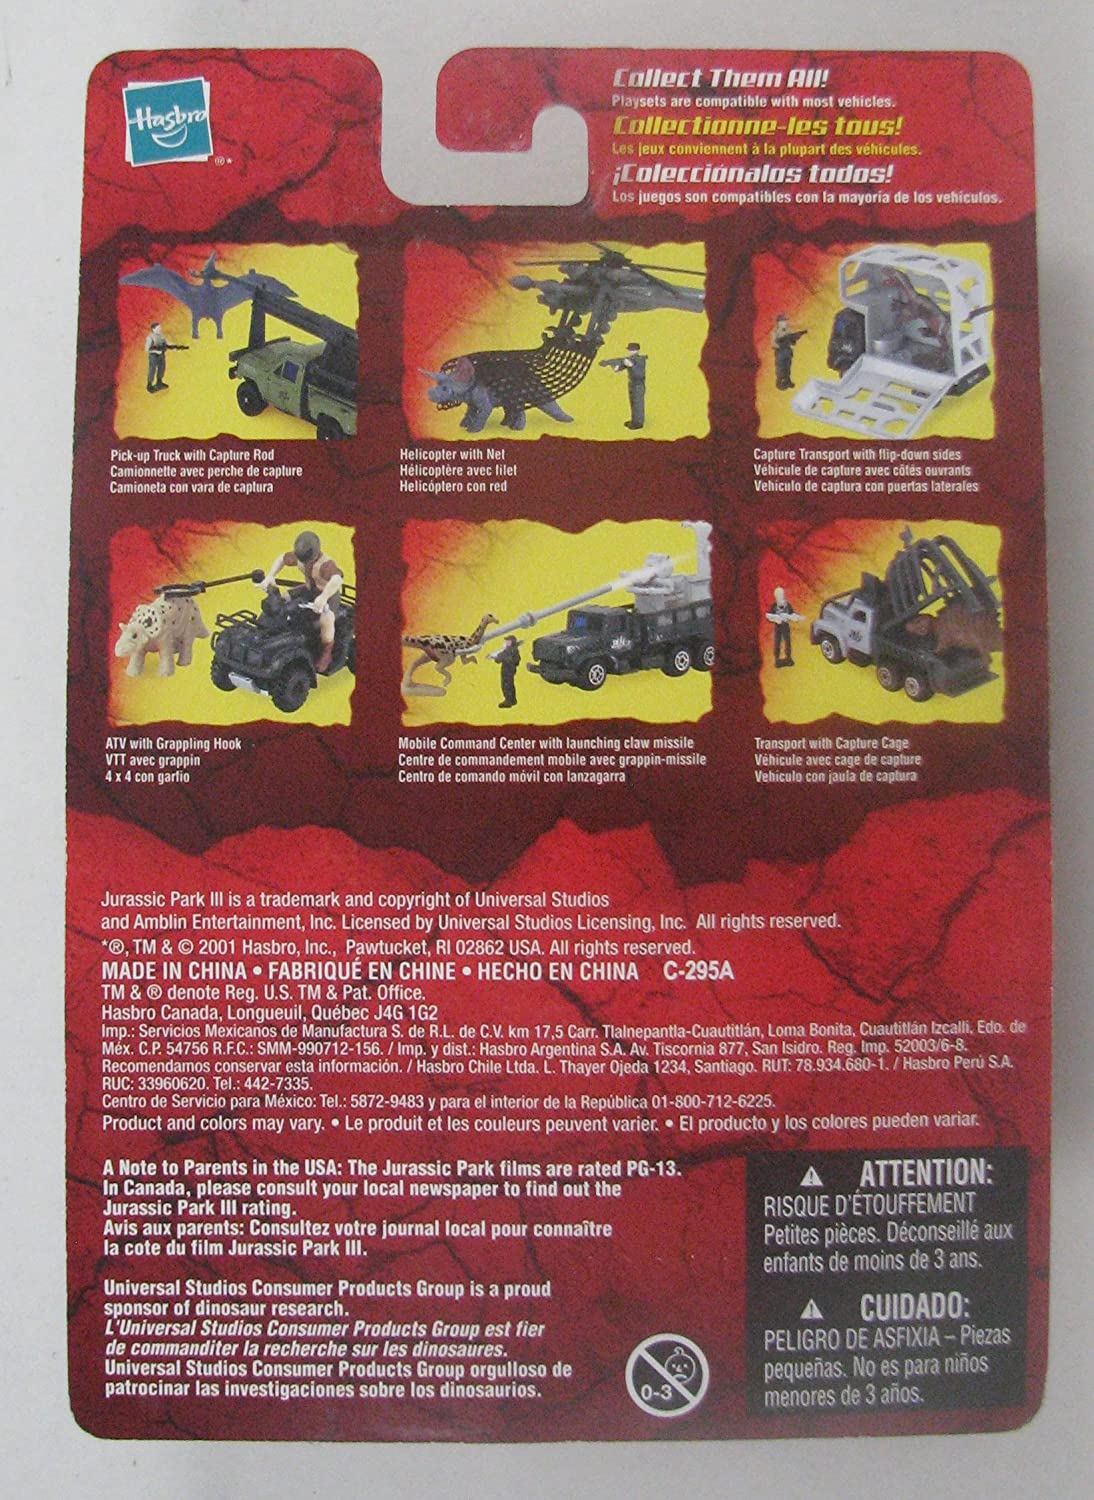 Amazon.com: Jurassic Park III Mobile Command Center with Launching Claw Missle and Gallimimus: Toys & Games